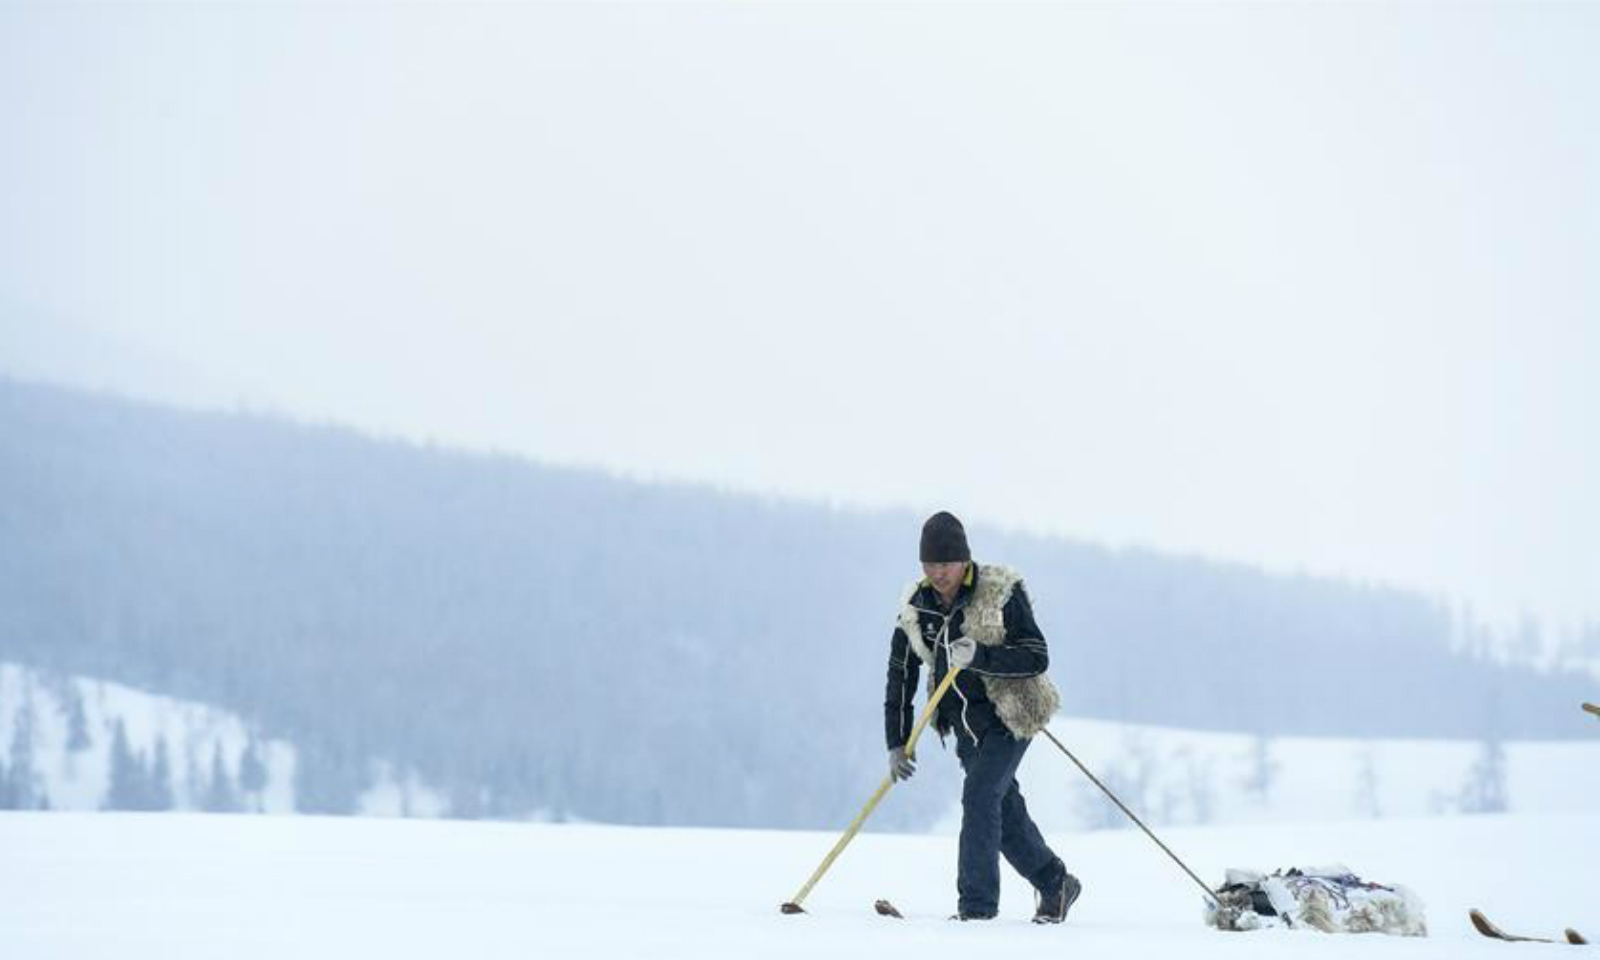 Xinjiang herdsmen complete 10-day journey on fur snowboardsNine men using traditional fur snowboards completed the 300km journey to promote skiing in the Xinjiang region